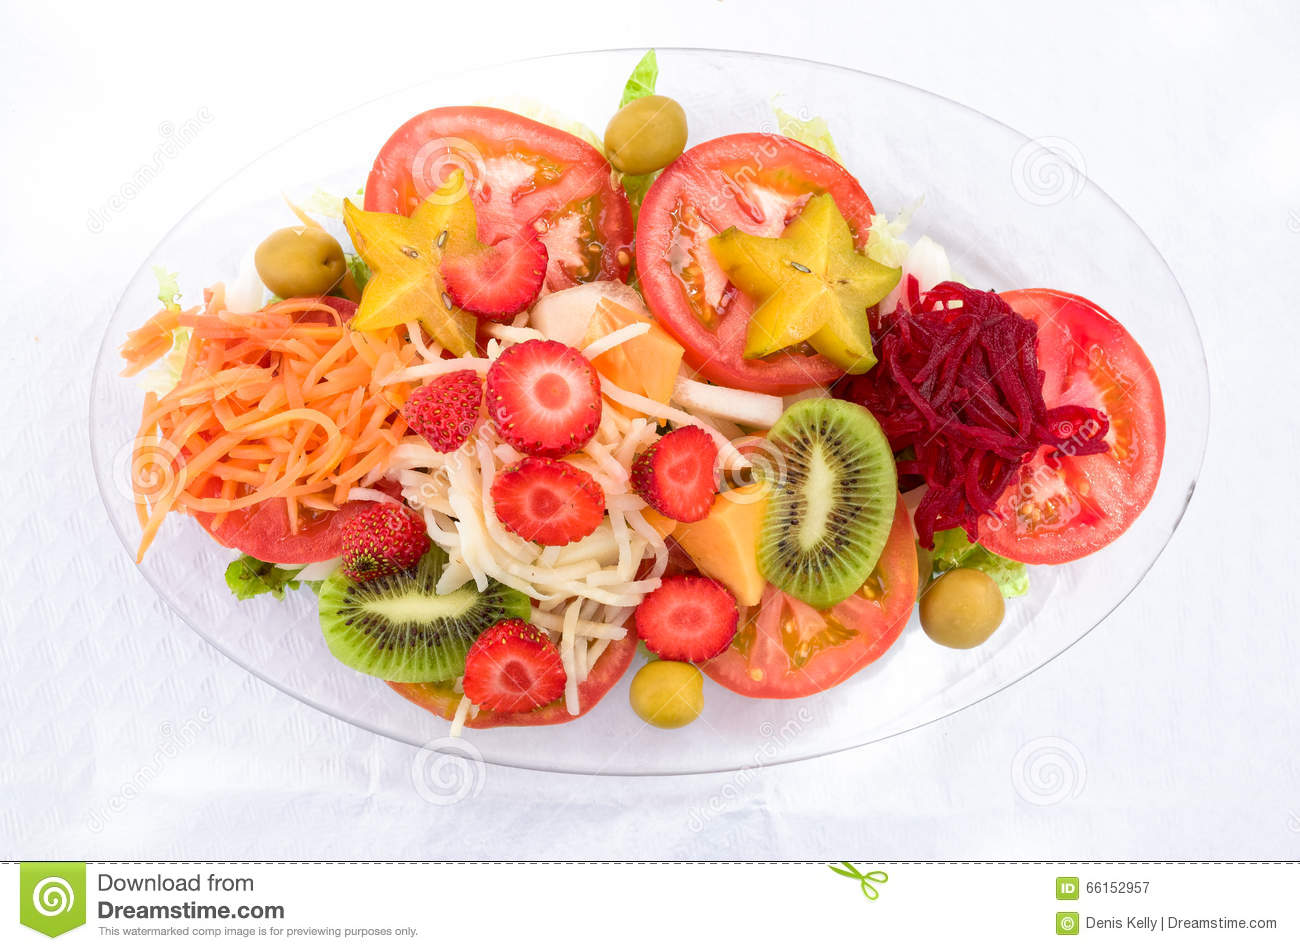 Mixed Fruit and Vegetable Salad